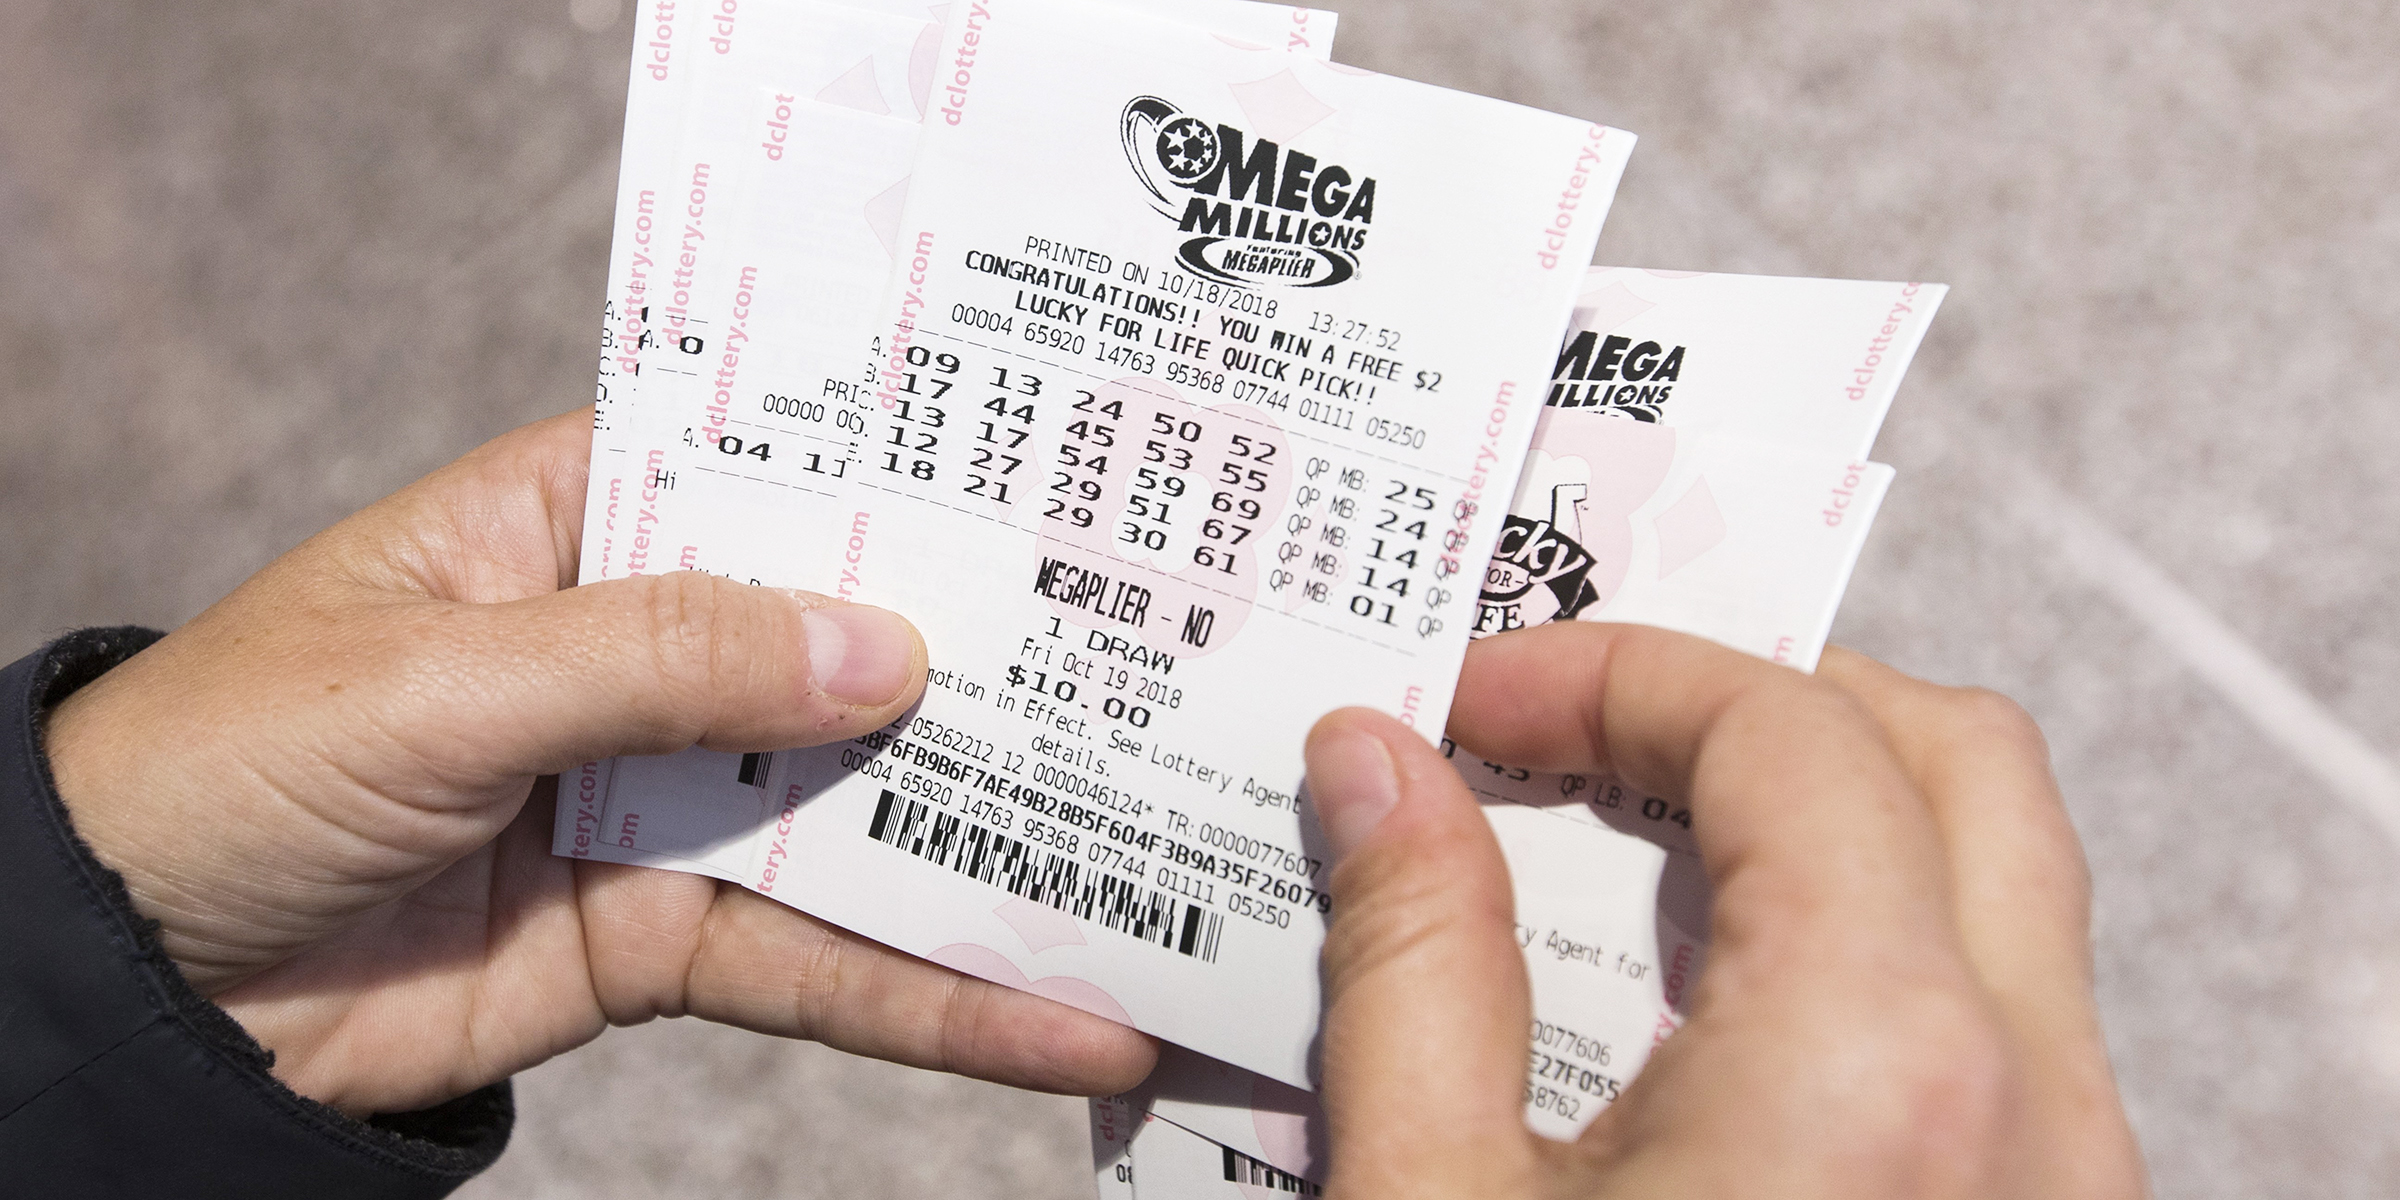 What to do if you win the Mega Millions jackpot: 9 ways to handle